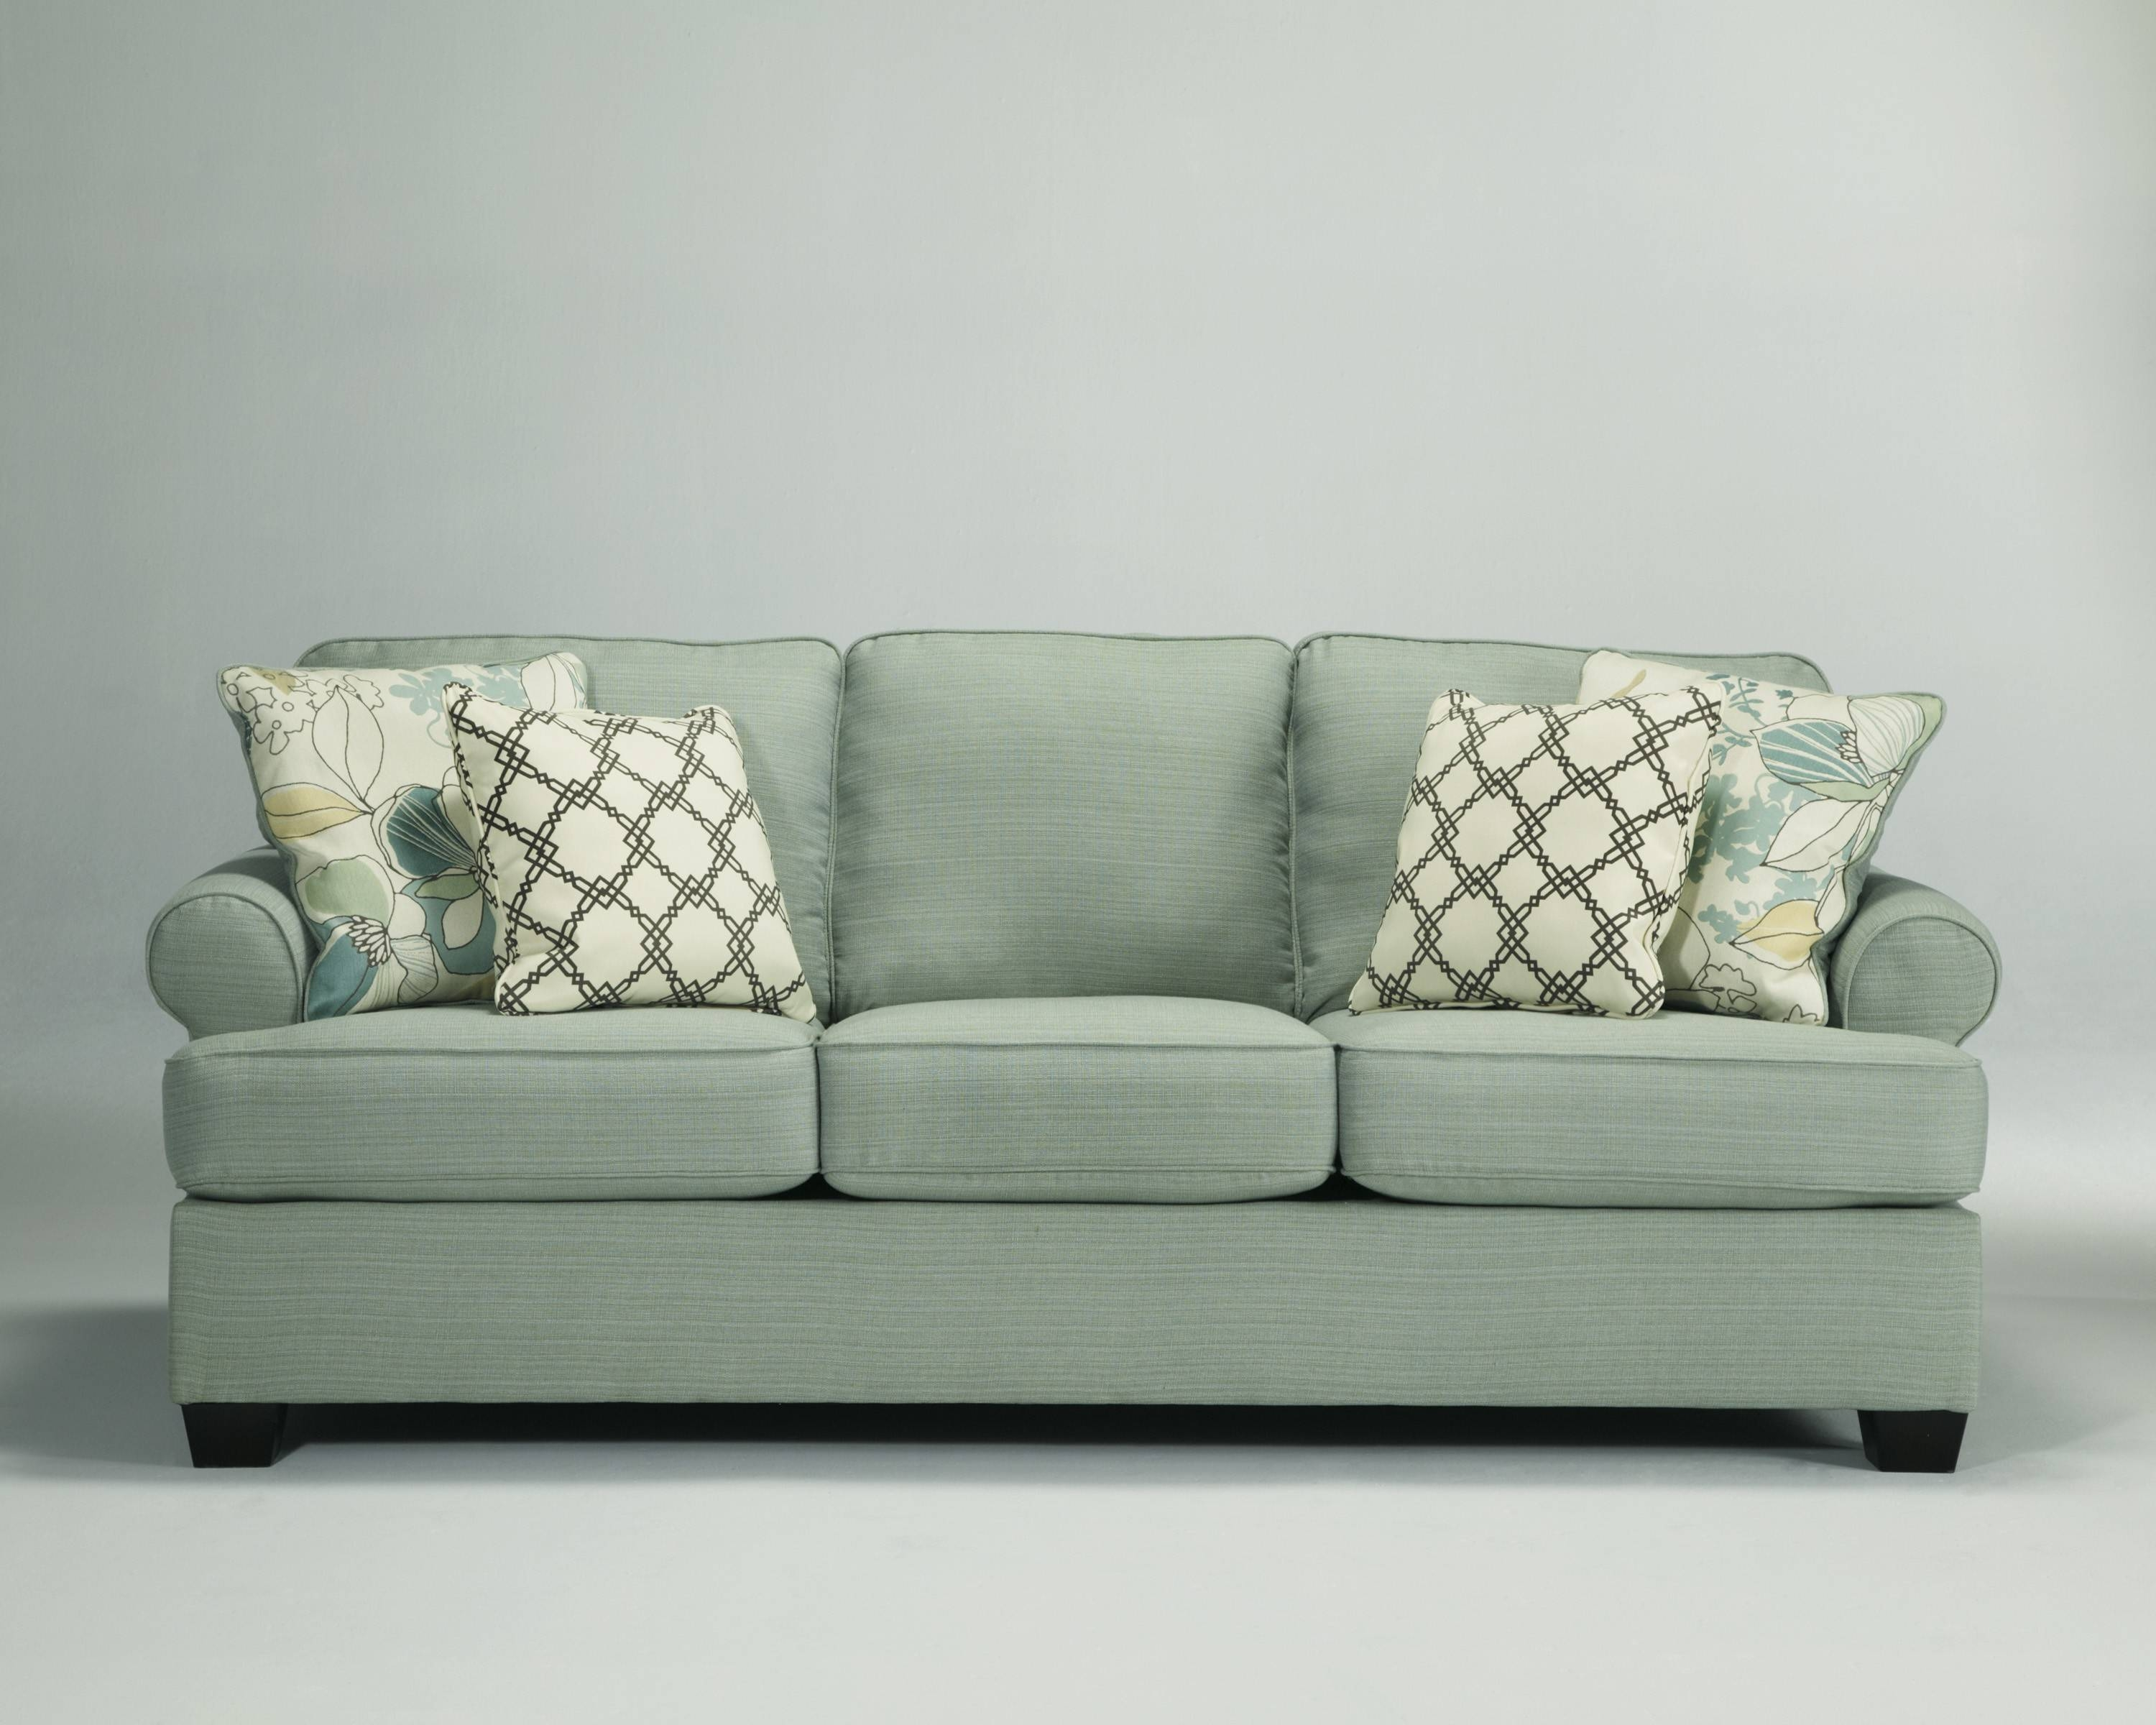 25 Best Ideas About Green Couch Decor On Pinterest | Sofa for Seafoam Green Couches (Image 1 of 15)